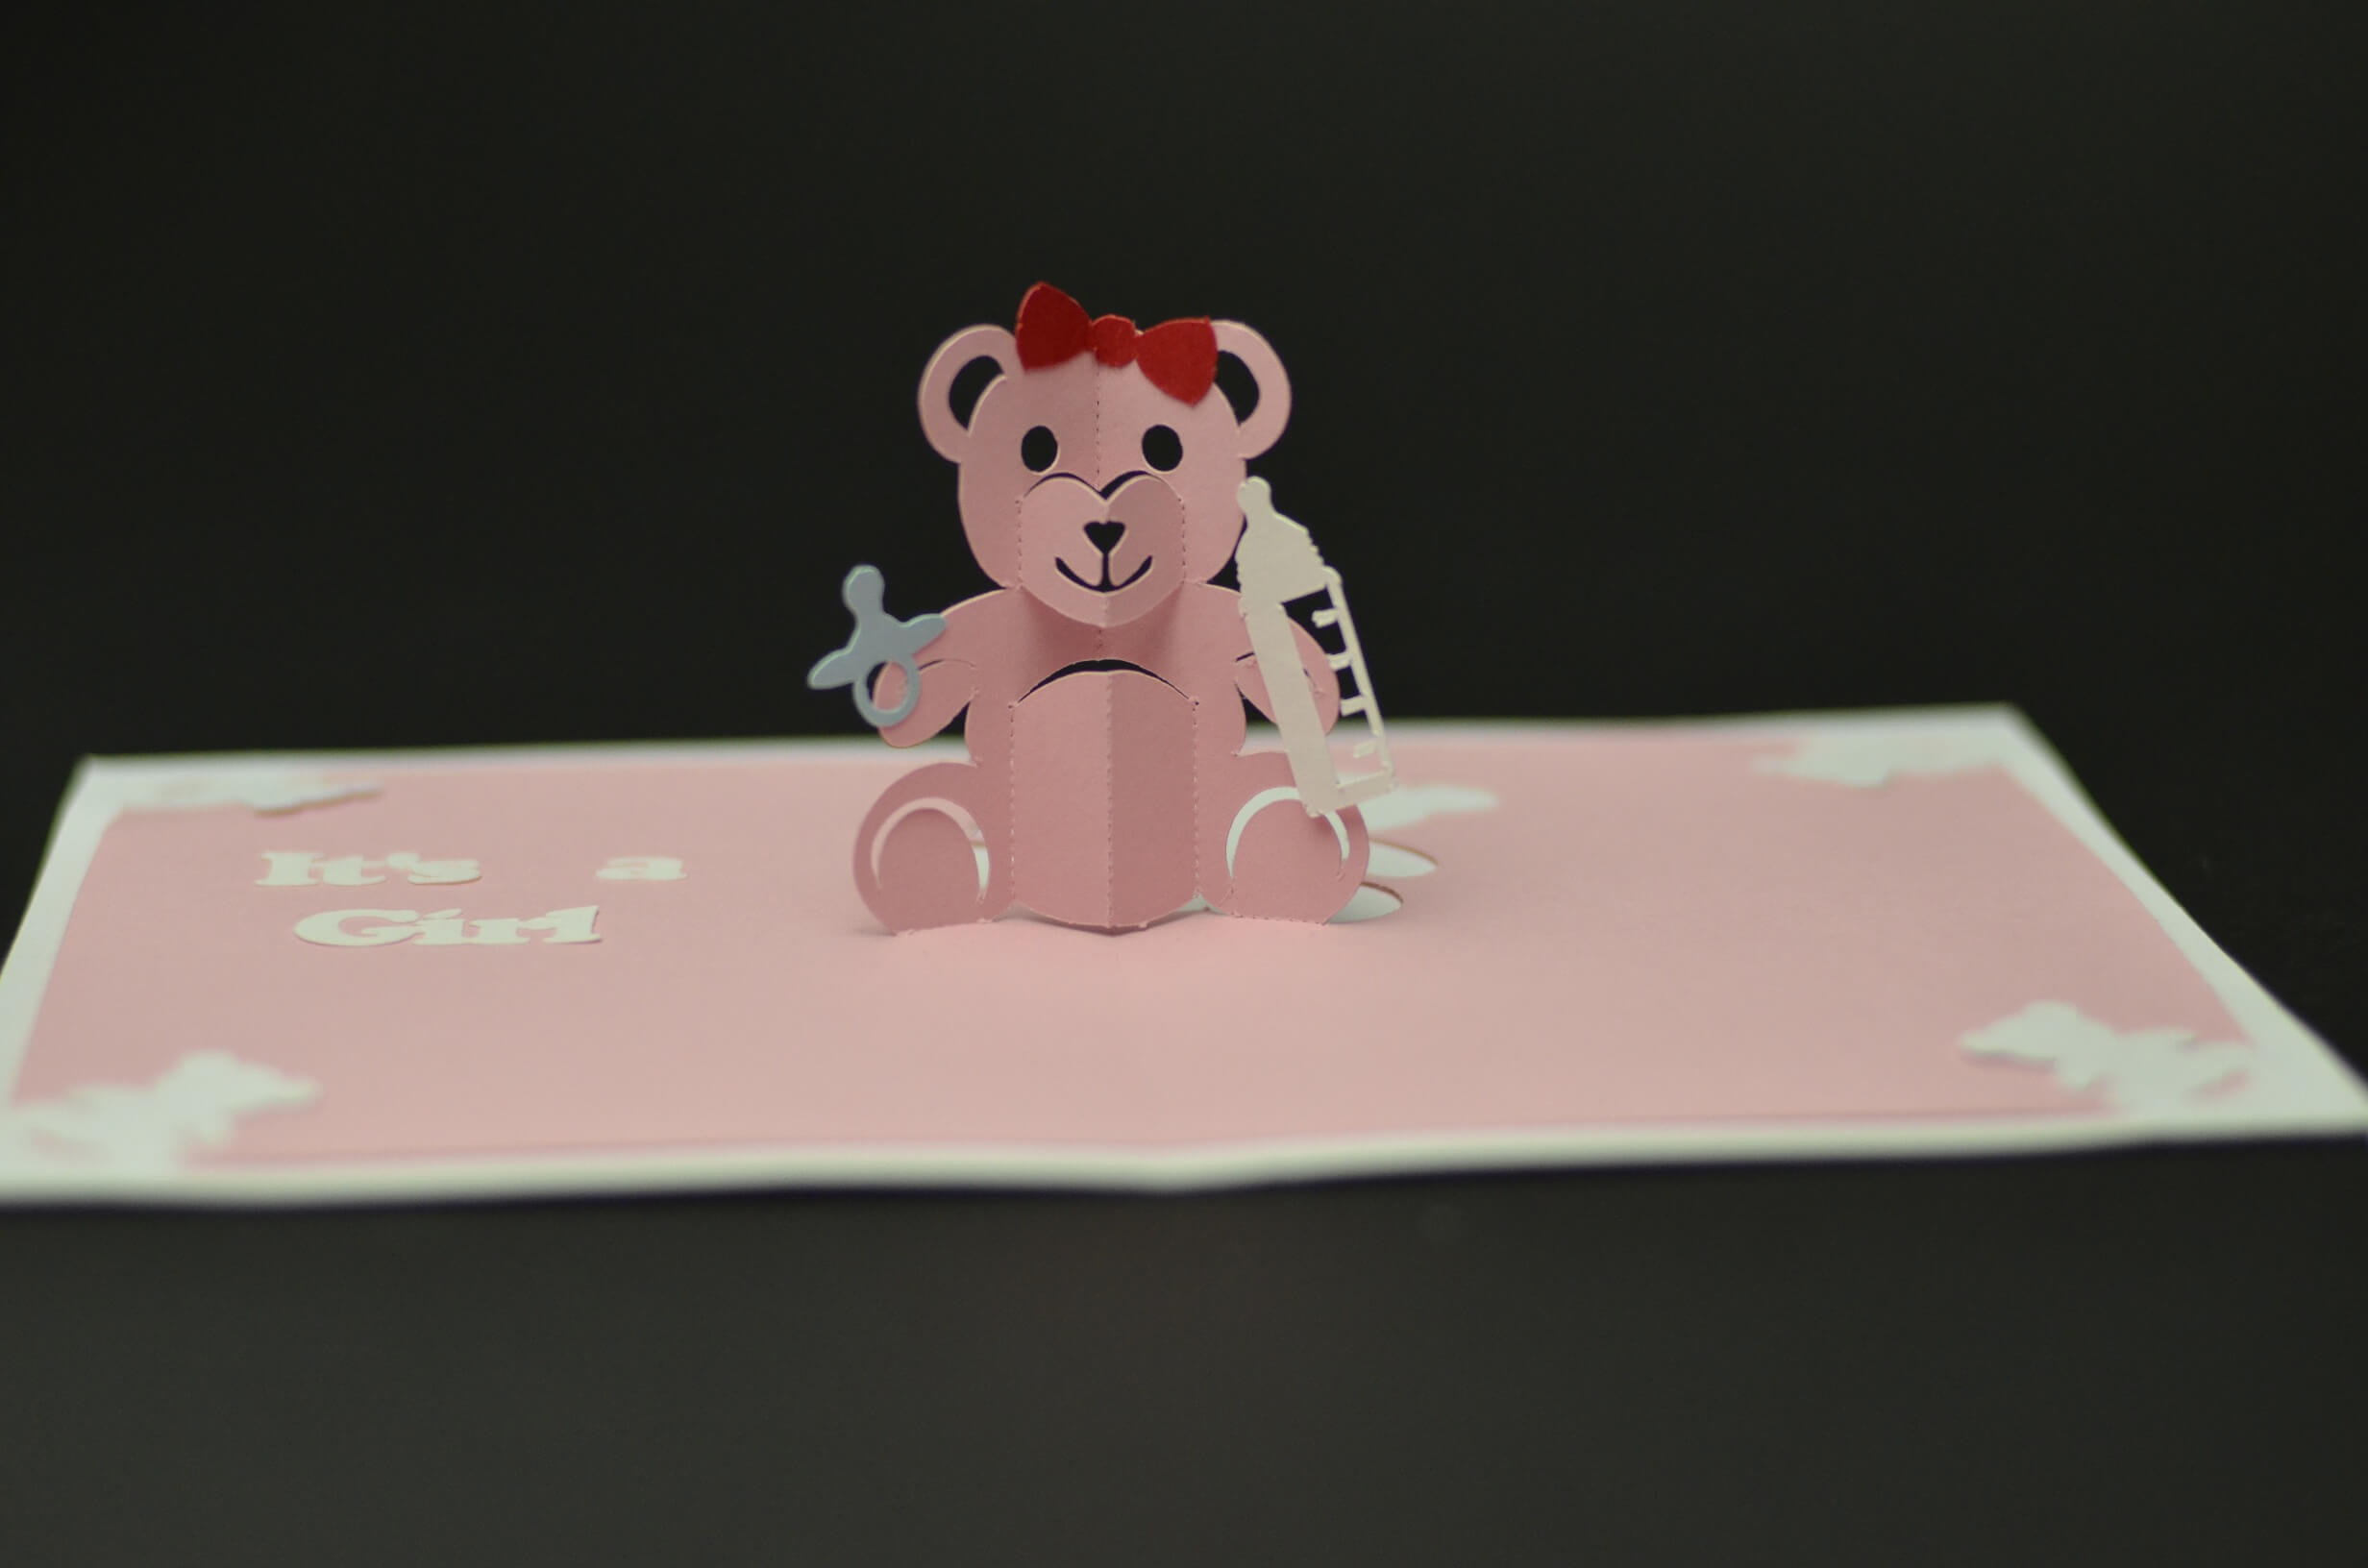 Teddy Bear Pop Up Card: Tutorial And Template - Creative Pop With Teddy Bear Pop Up Card Template Free